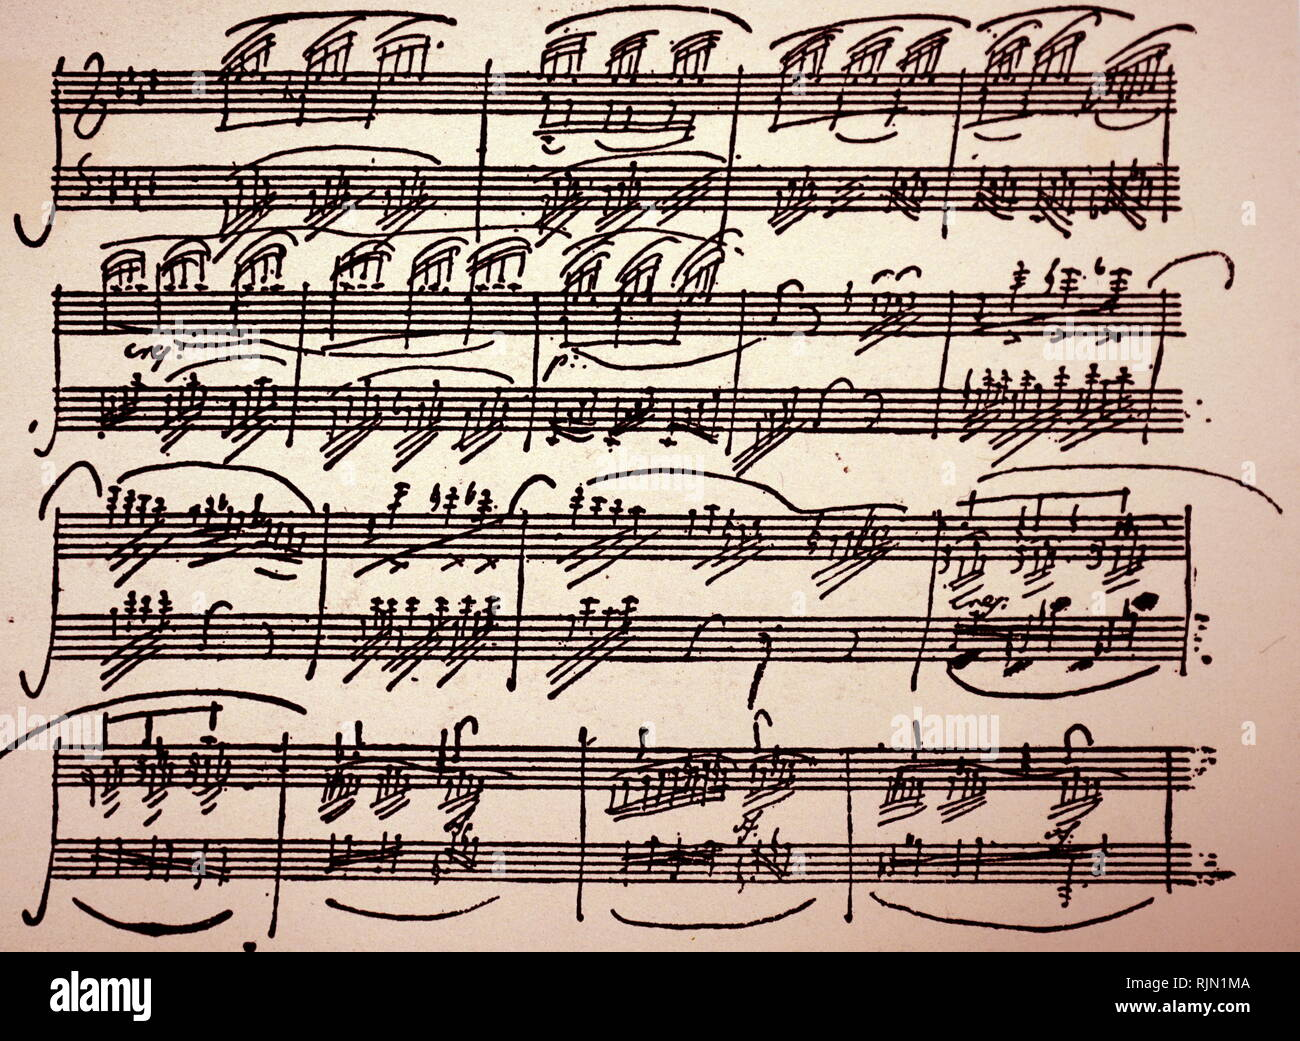 Piano Sonata No. 12 in A? major, Op. 26; 1801, by Ludwig van Beethoven. He dedicated the sonata to Prince Karl von Lichnowsky, who had been his patron since 1792. Consisting of four movements, the sonata takes around 20-22 minutes to perform. - Stock Image